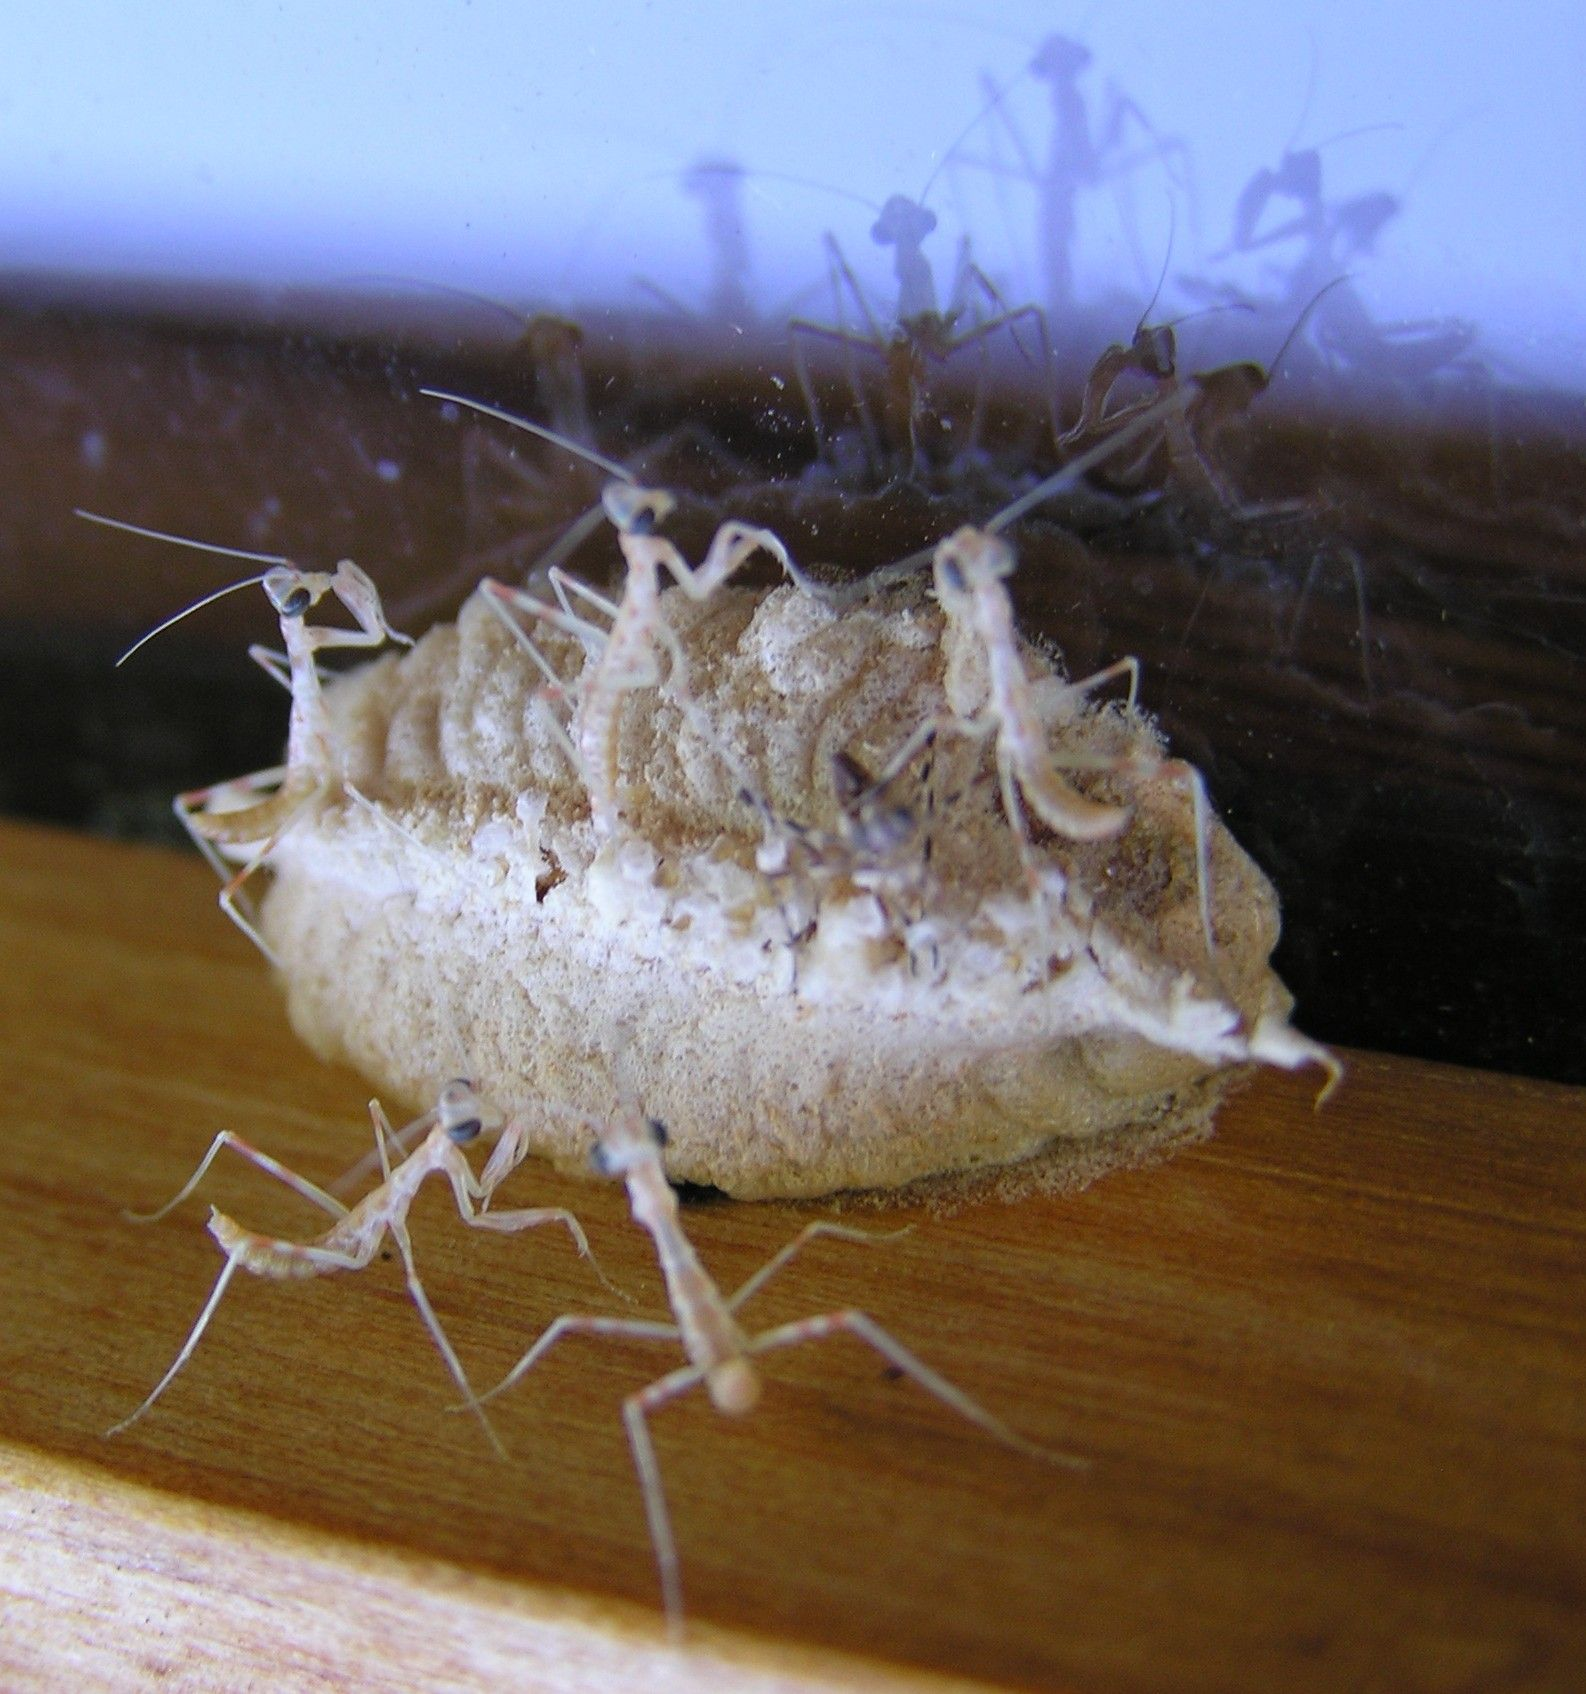 Different Praying Mantis Species for that matter. It